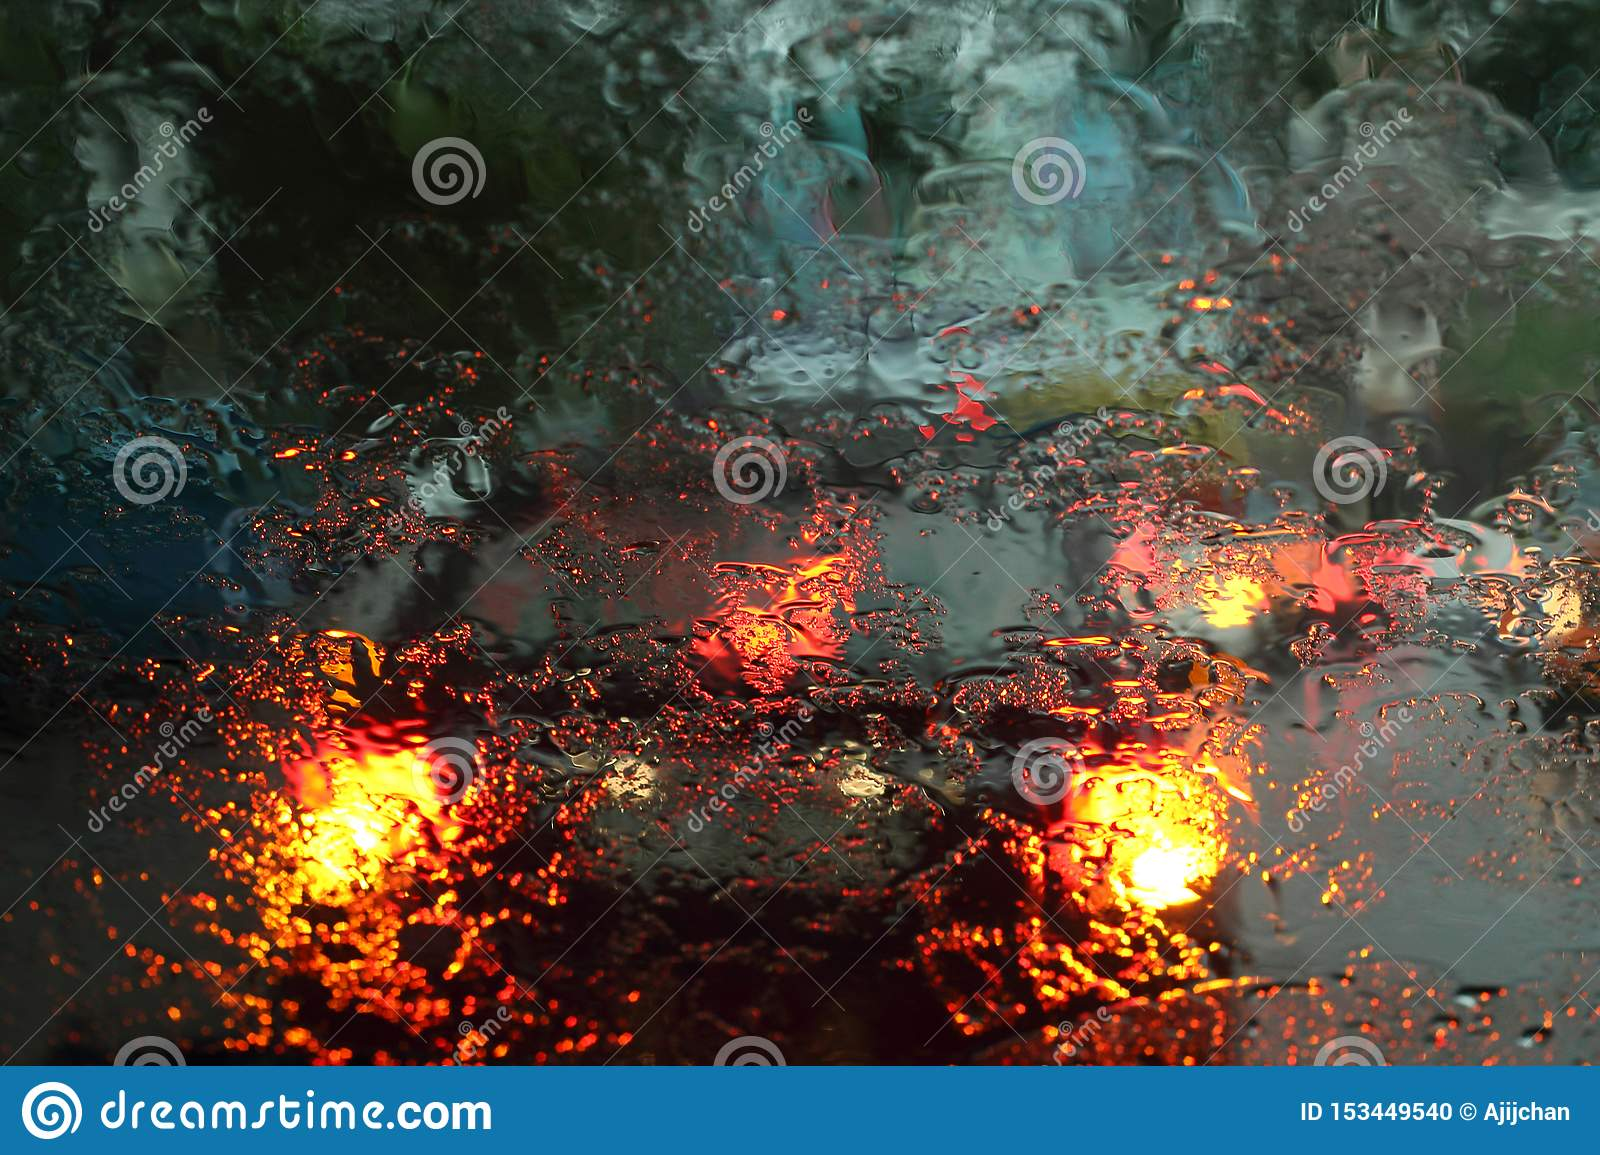 Vehicles viewed through a wet glass in the rain